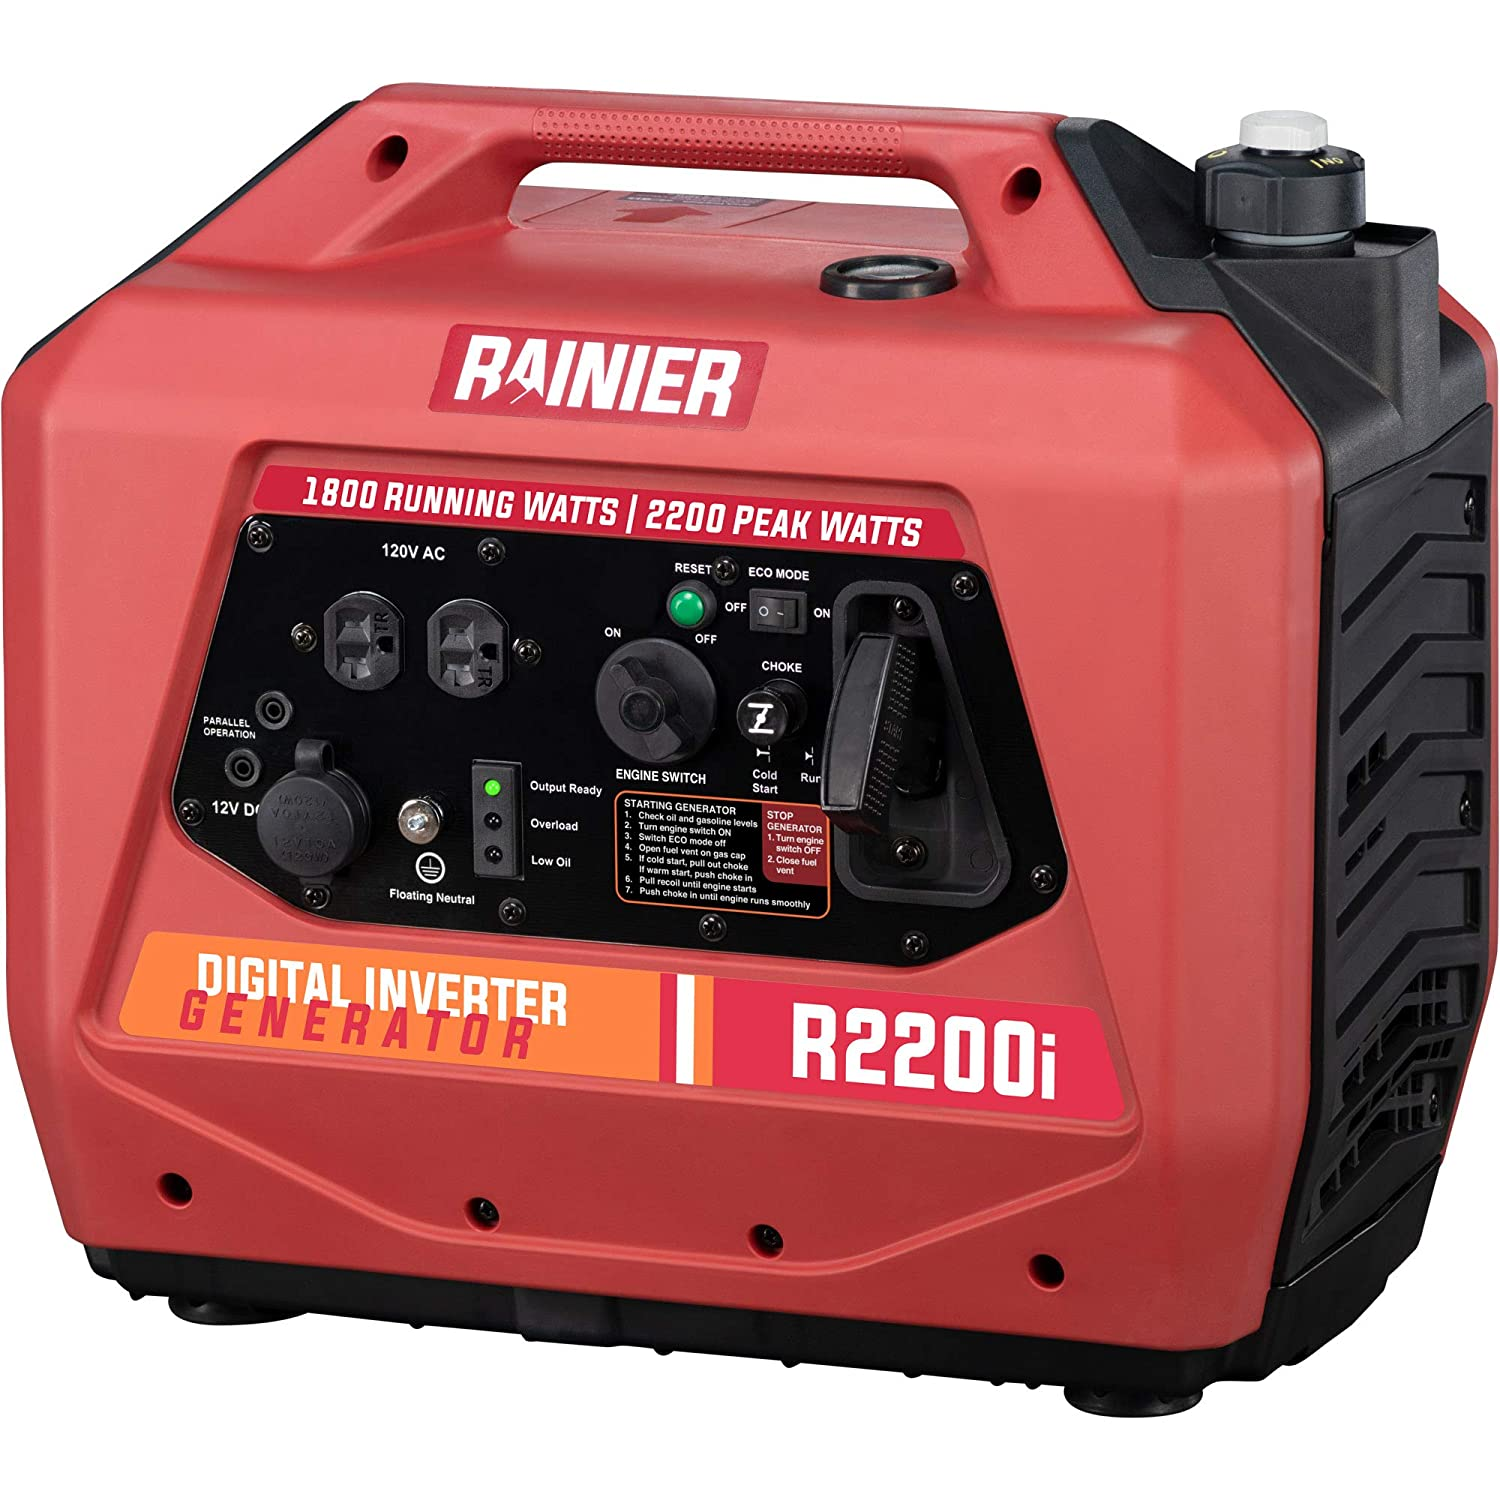 Rainier R2200i Portable Inverter Generator